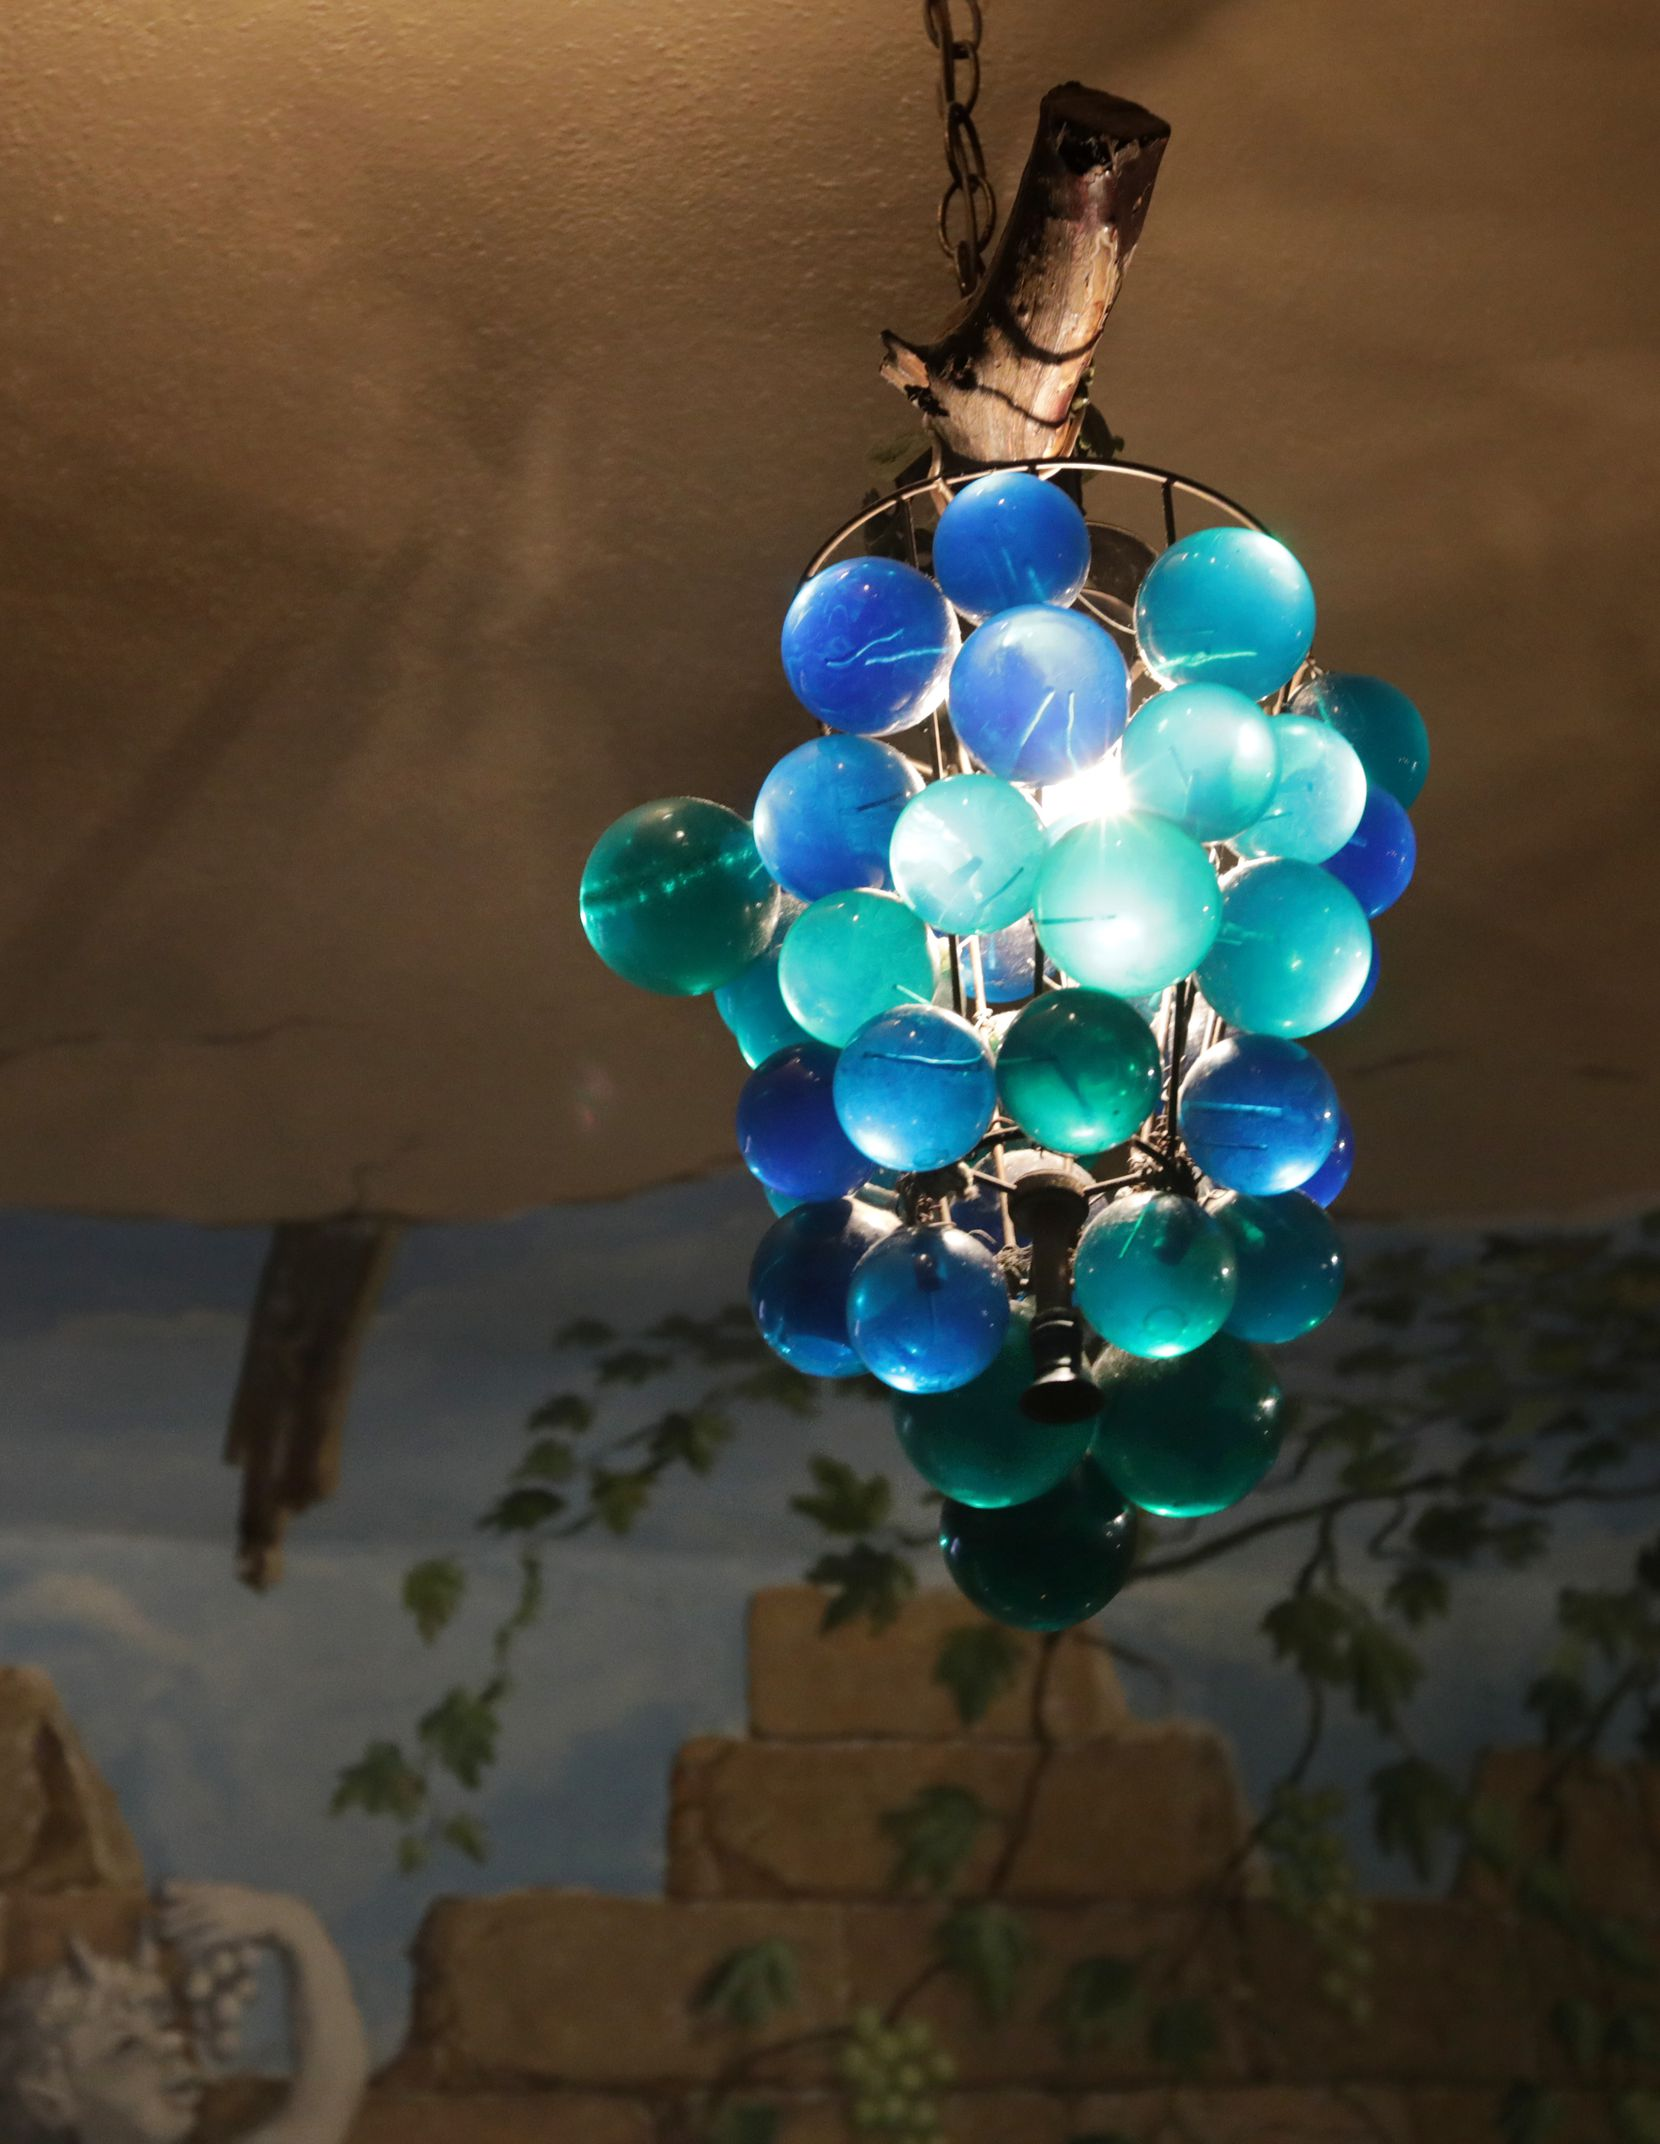 One of the original grape pendant lights. Not for sale.